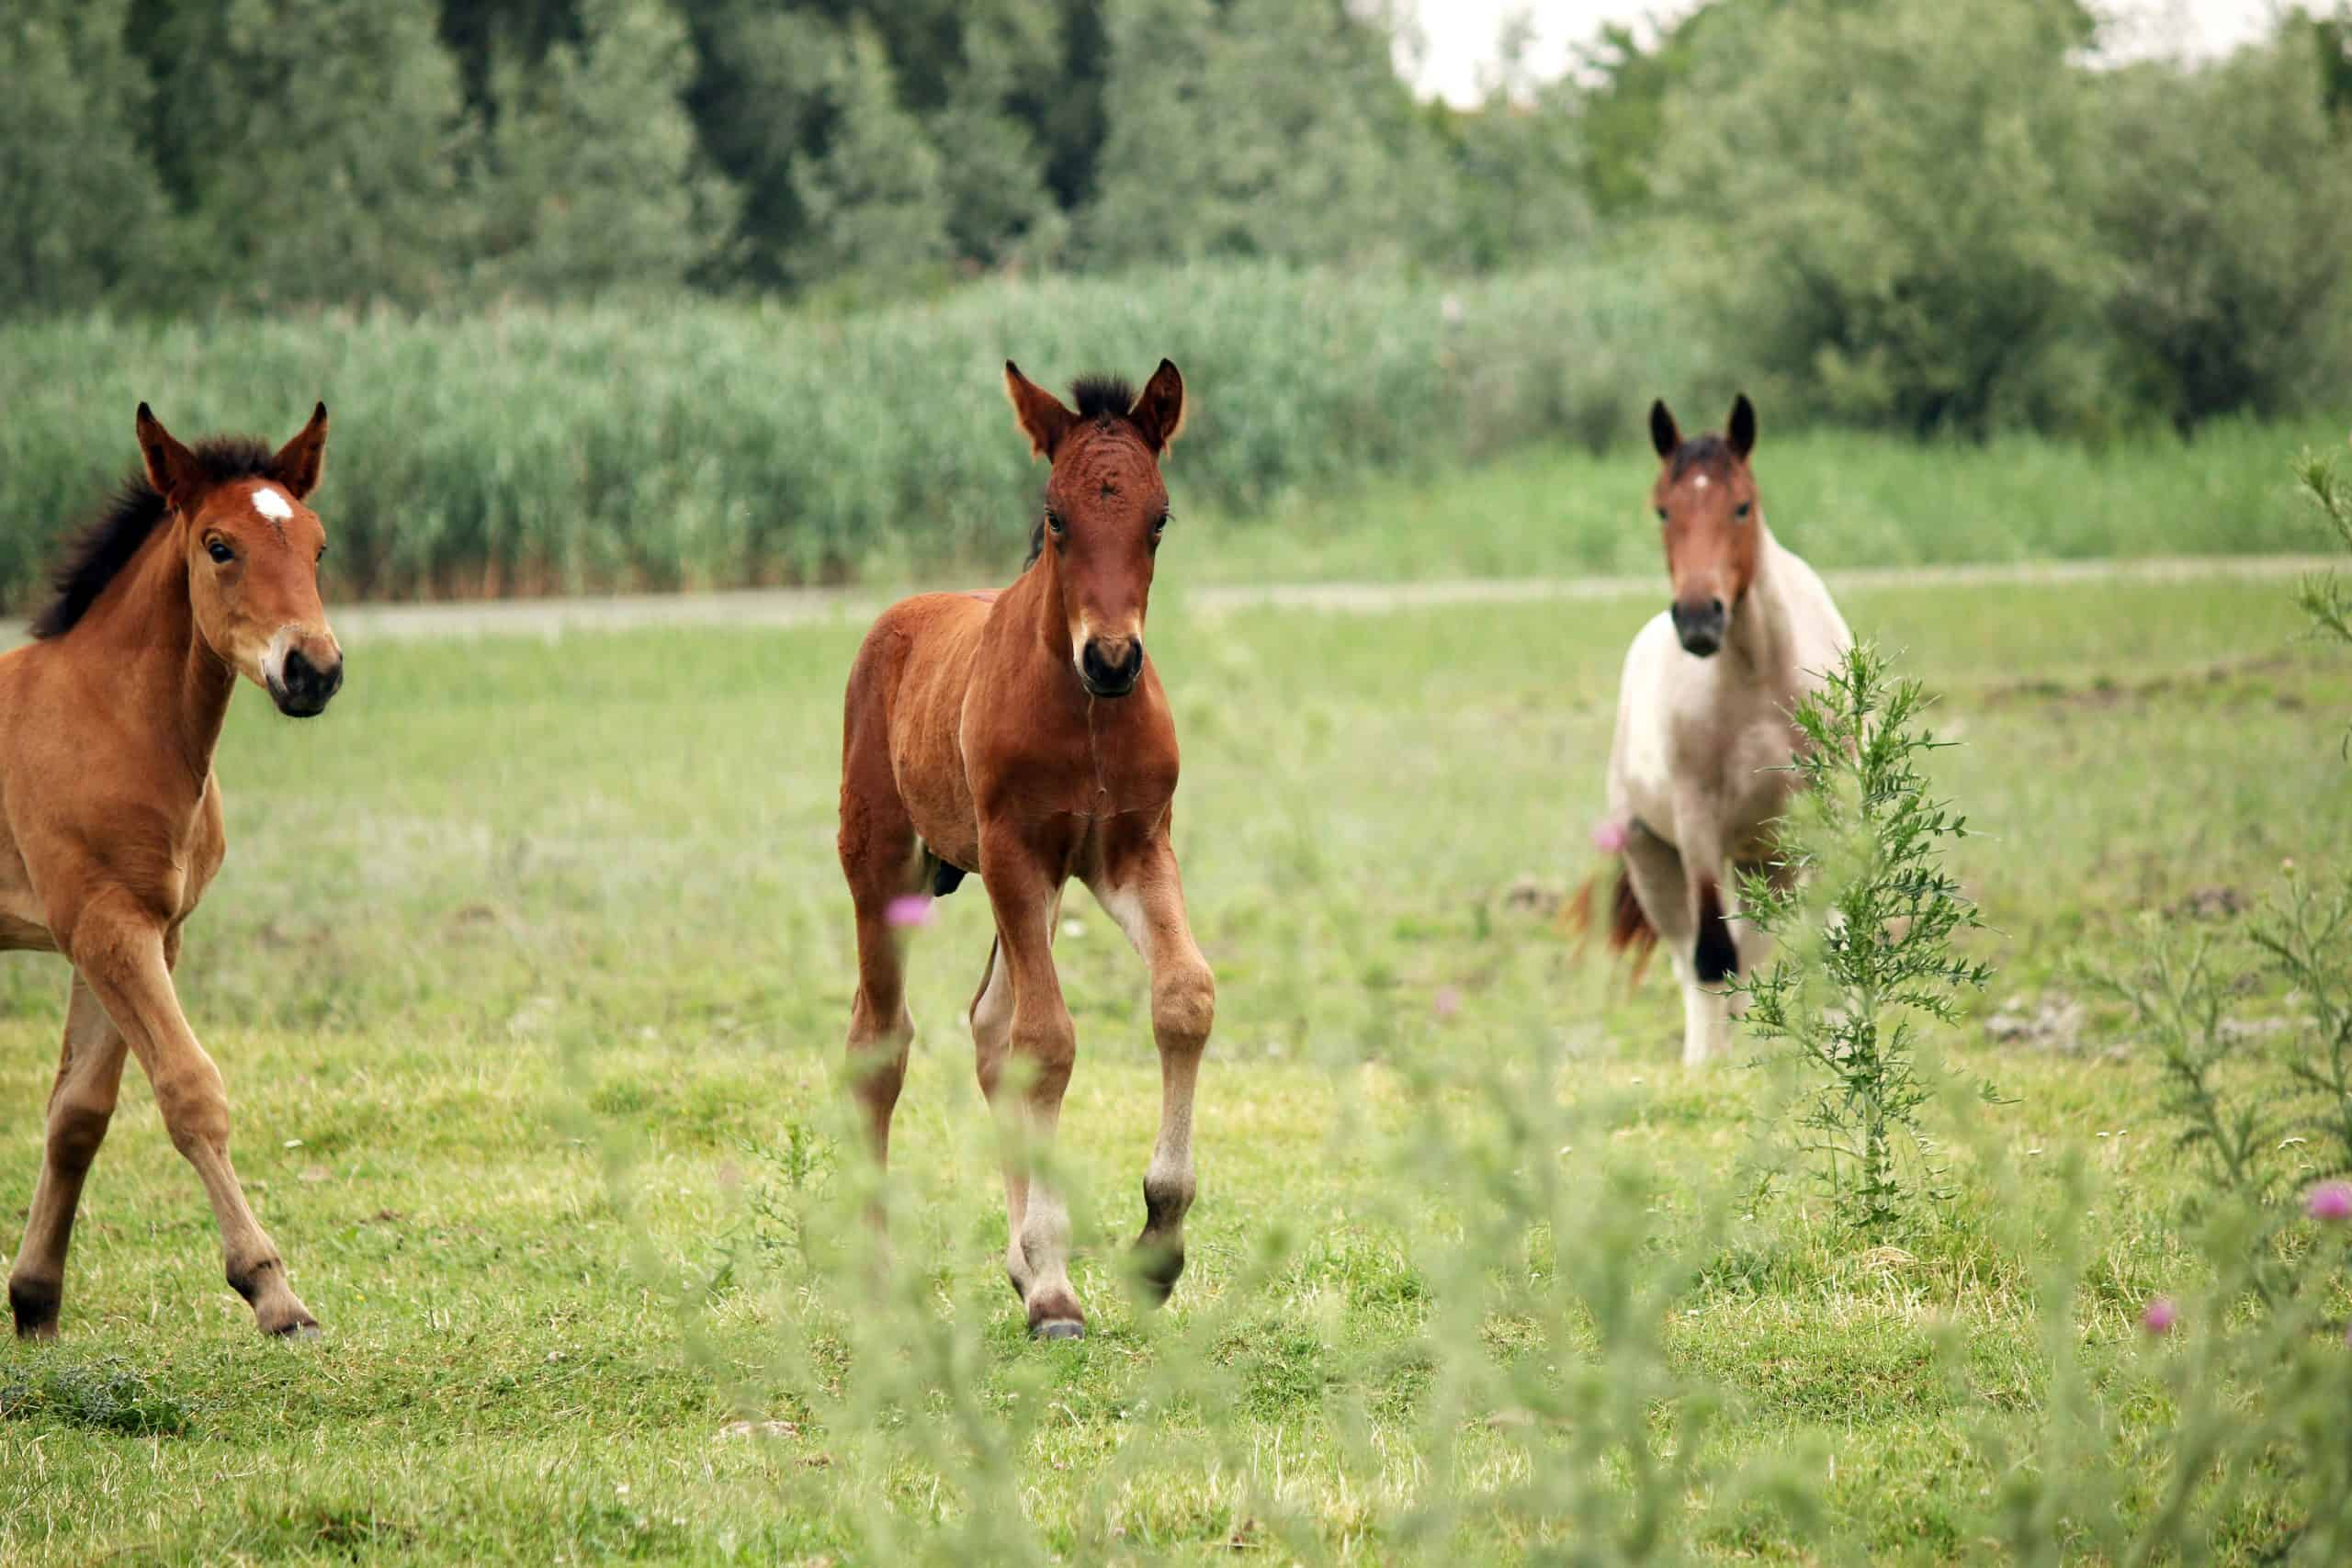 horses and foals on field